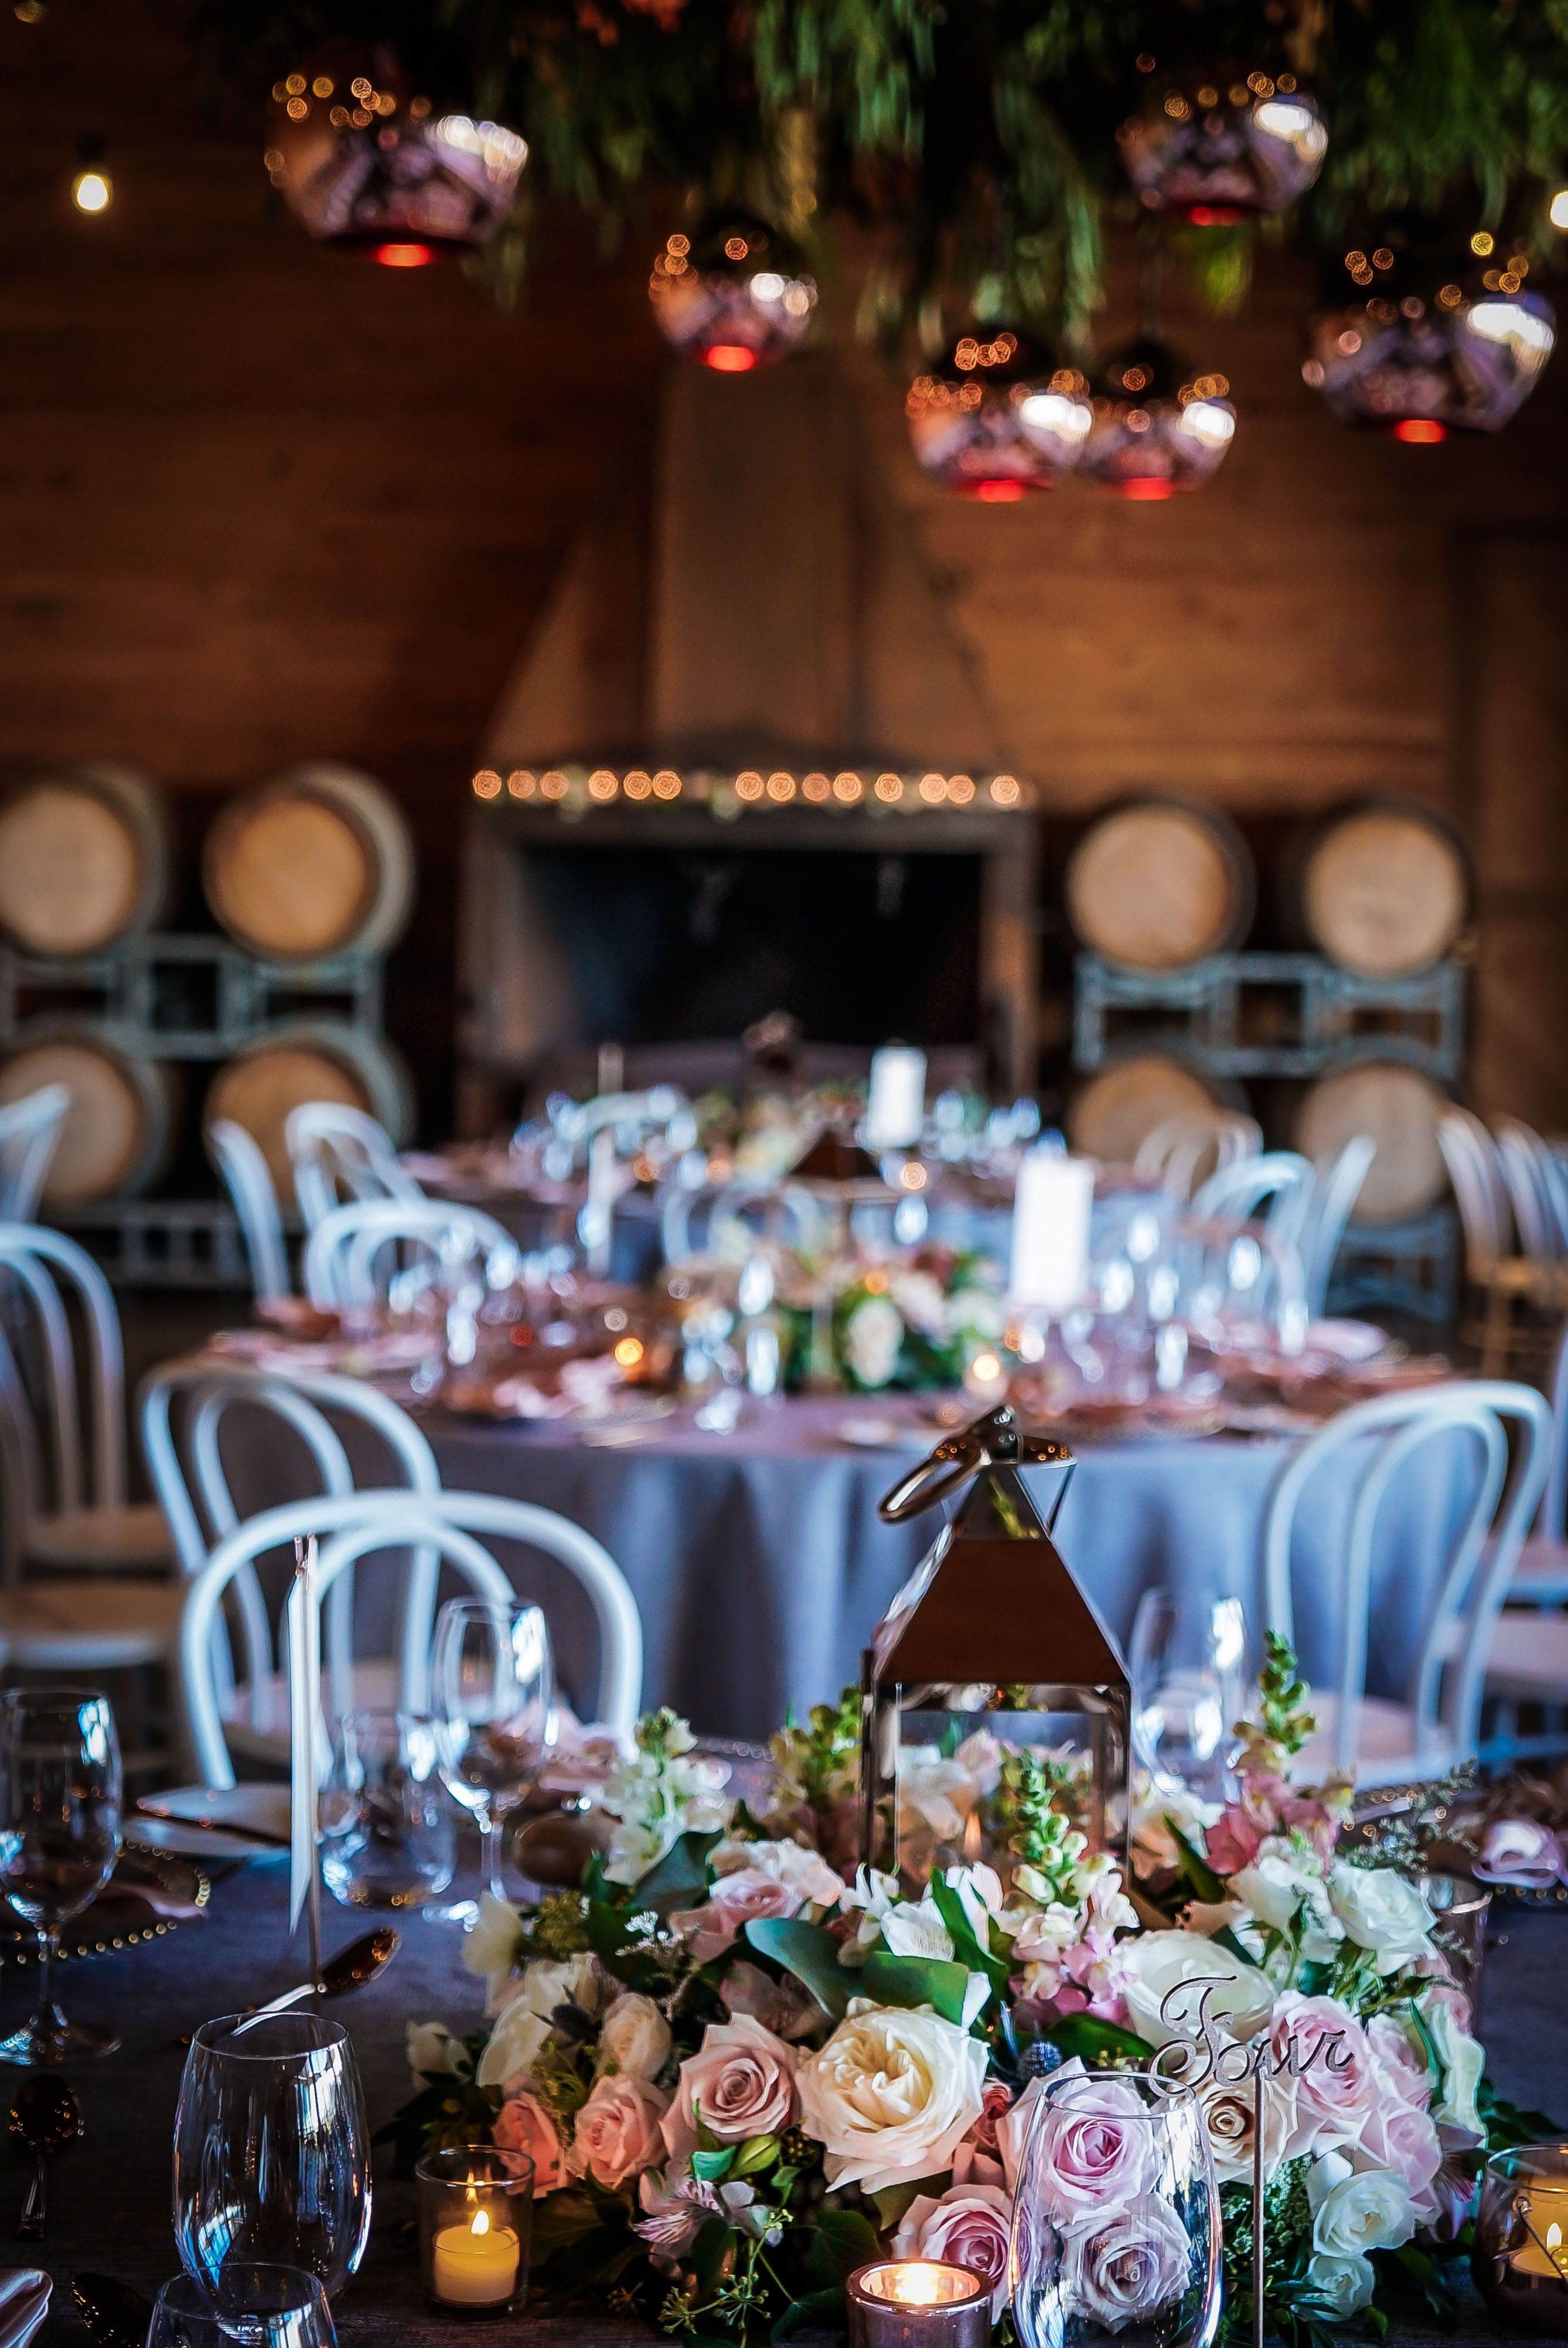 Wedding Photo At Frogmores Styling By Event Avenue Frogmore Creek